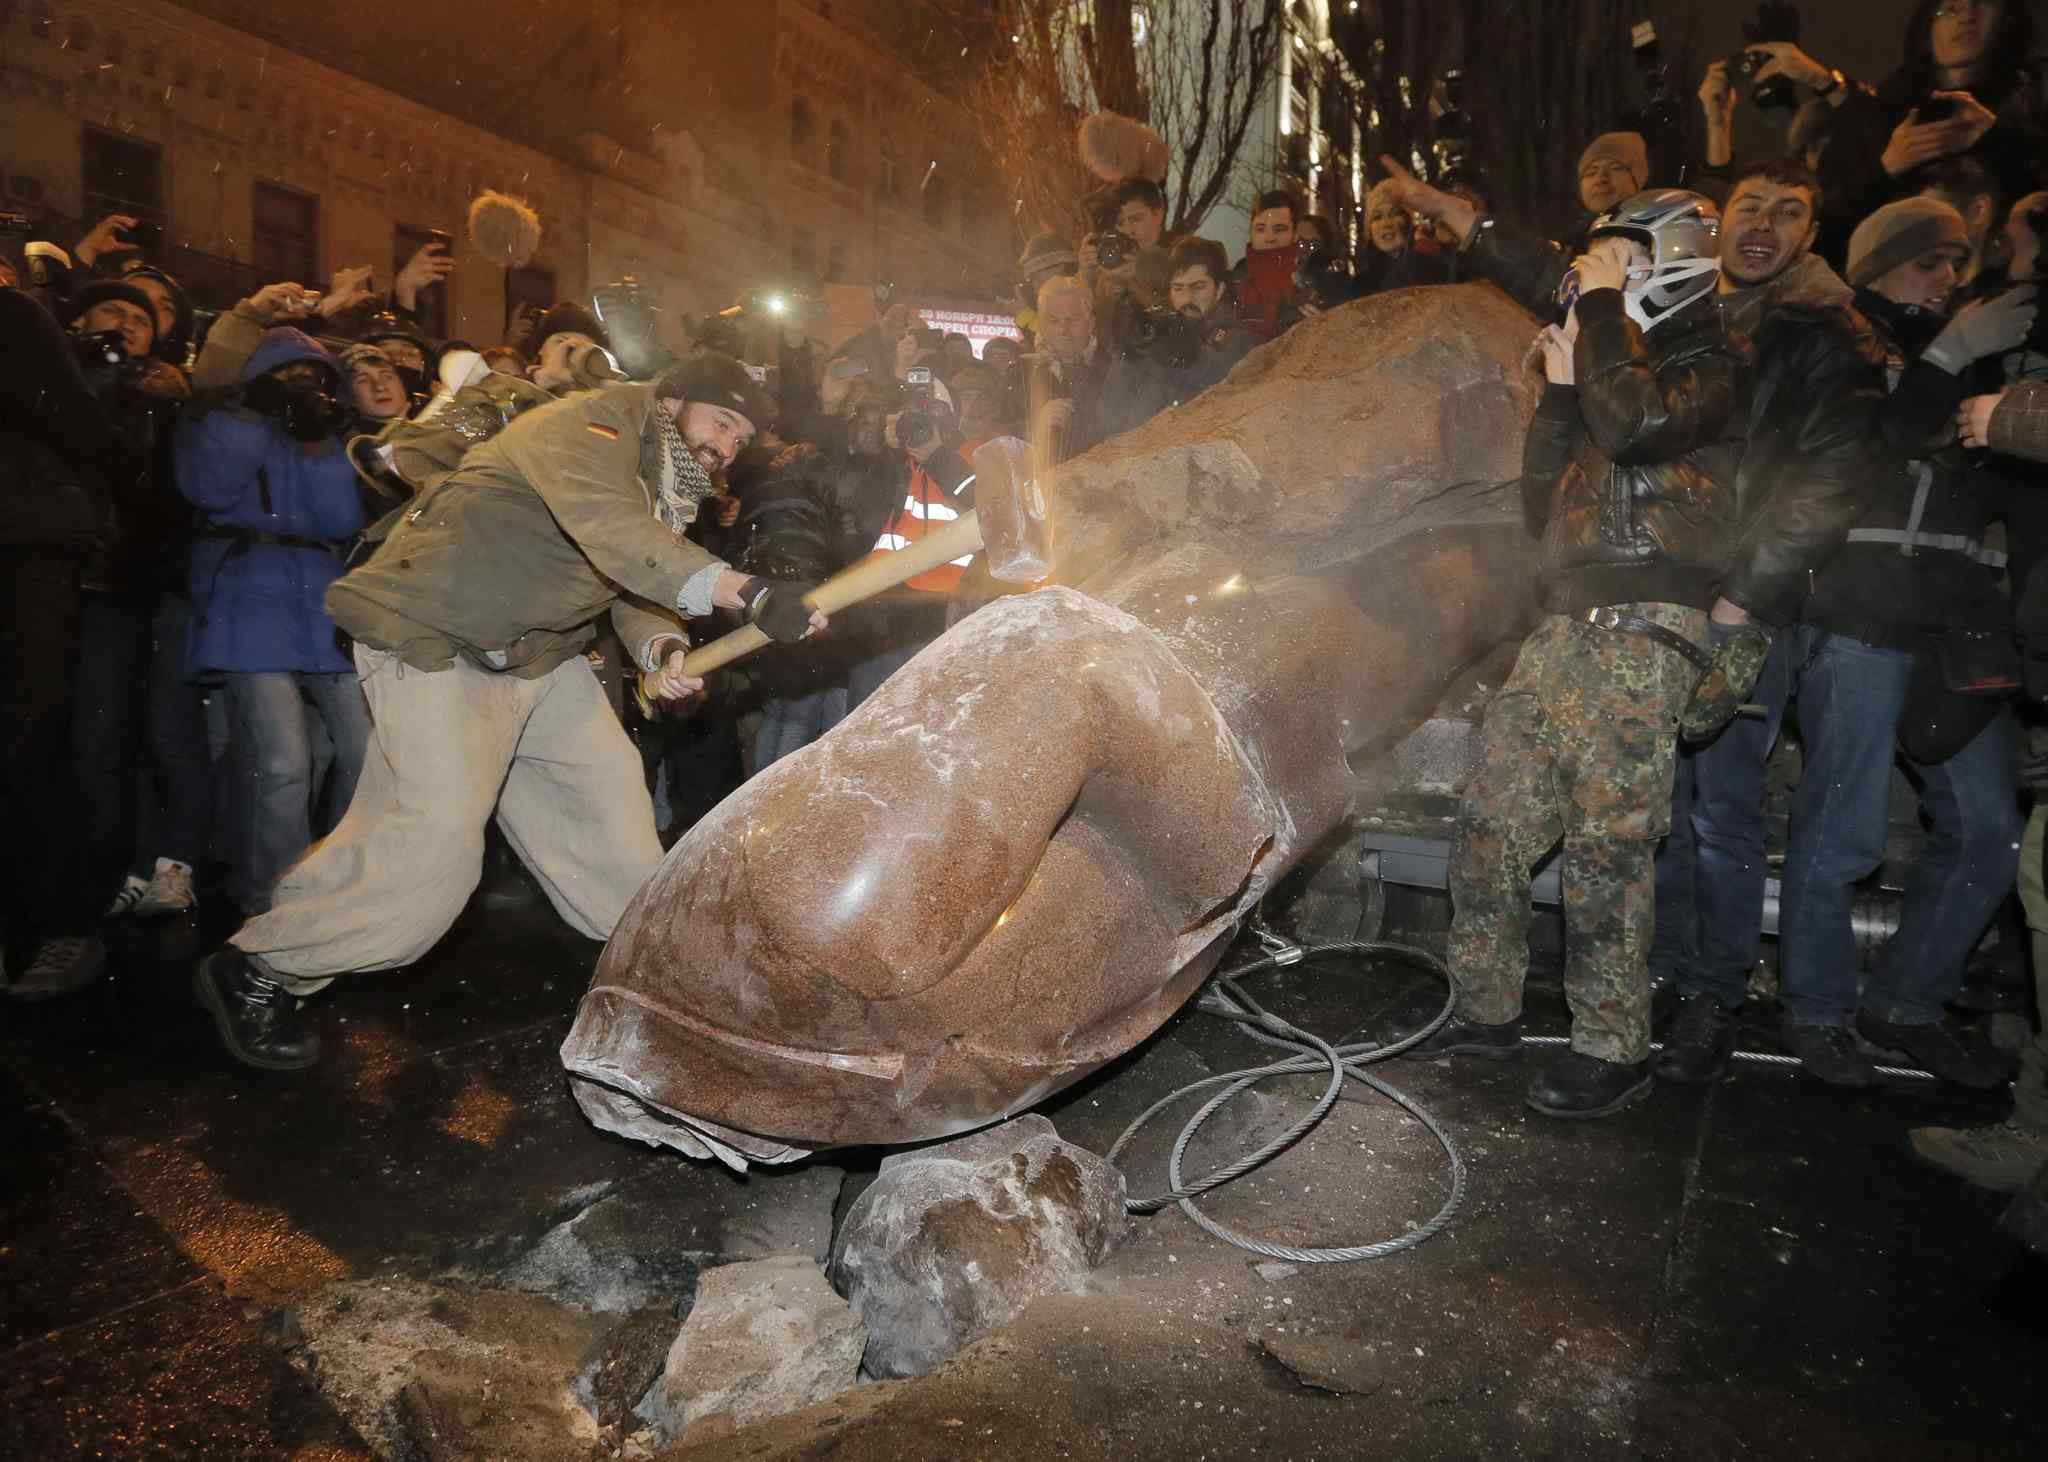 Ukrainian protesters smash a statue of Vladimir Lenin with a sledgehammer, in central Kyiv, Ukraine, Sunday. Anti-government protesters have toppled the statue of Bolshevik leader Vladimir Lenin in central Kiev amid huge protests gripping Ukraine. A group of protesters dragged down and decapitated the landmark statue Sunday evening after hundreds of thousands of others took to the streets to denounce the government's move away from Europe and toward Moscow.